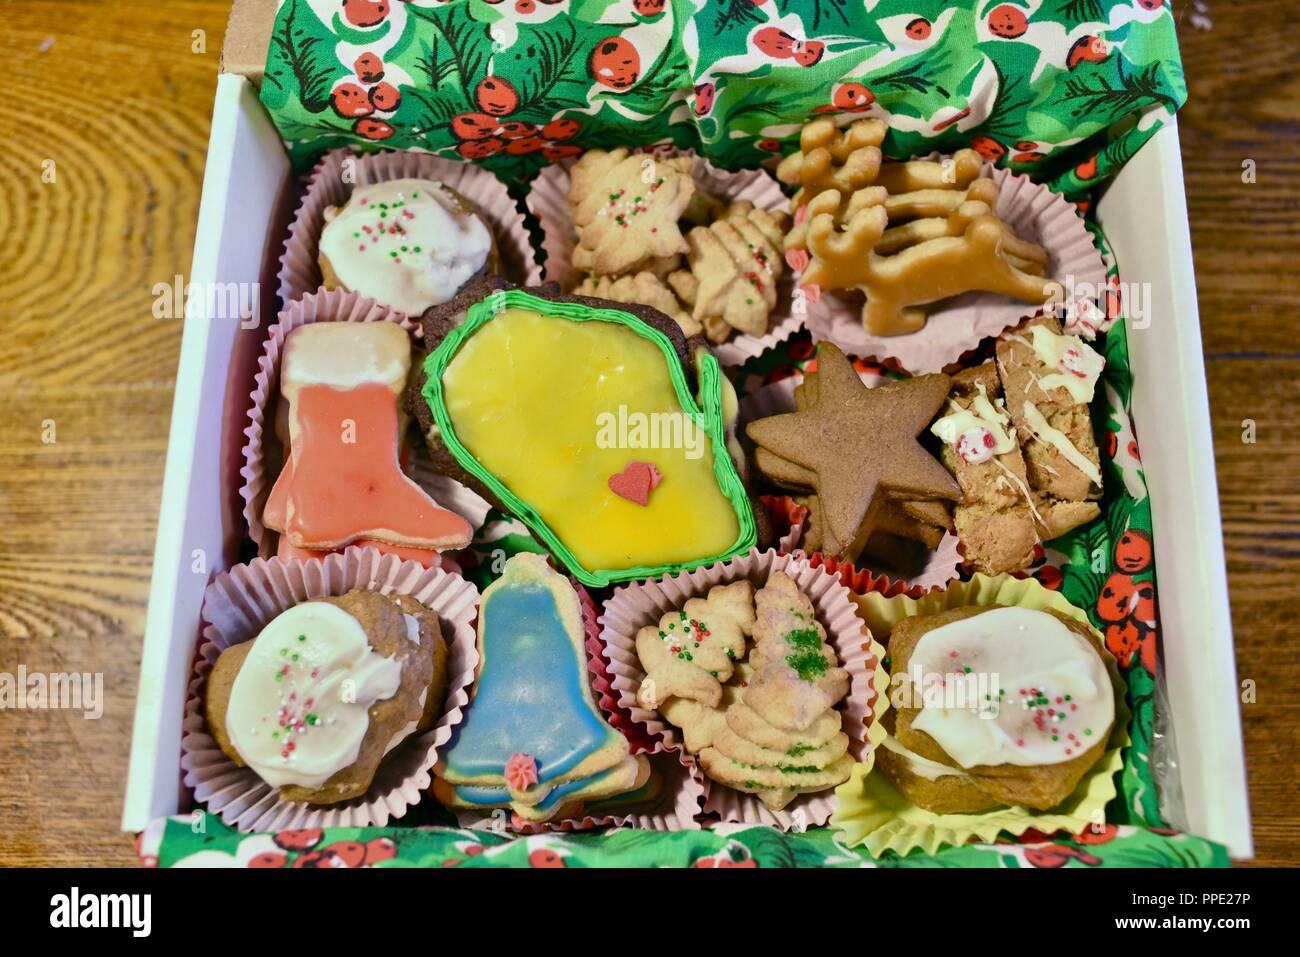 Box Of Assorted Colorful Homemade Home Baked And Hand Decorated